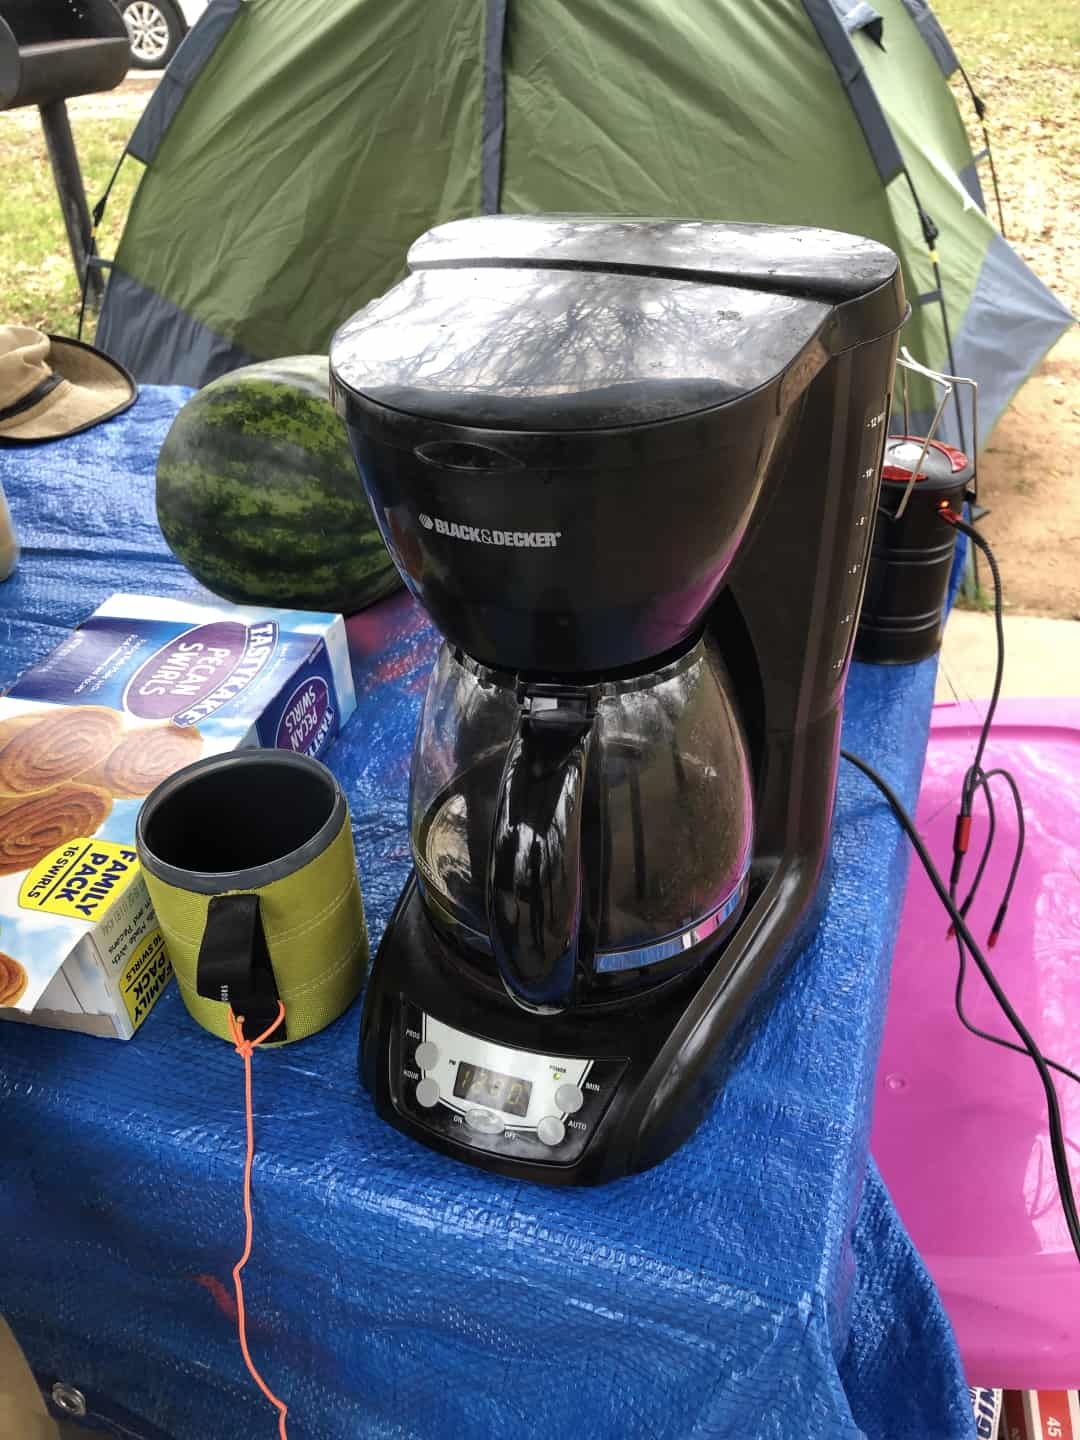 Electric drip coffee maker at a campsite that had electricity